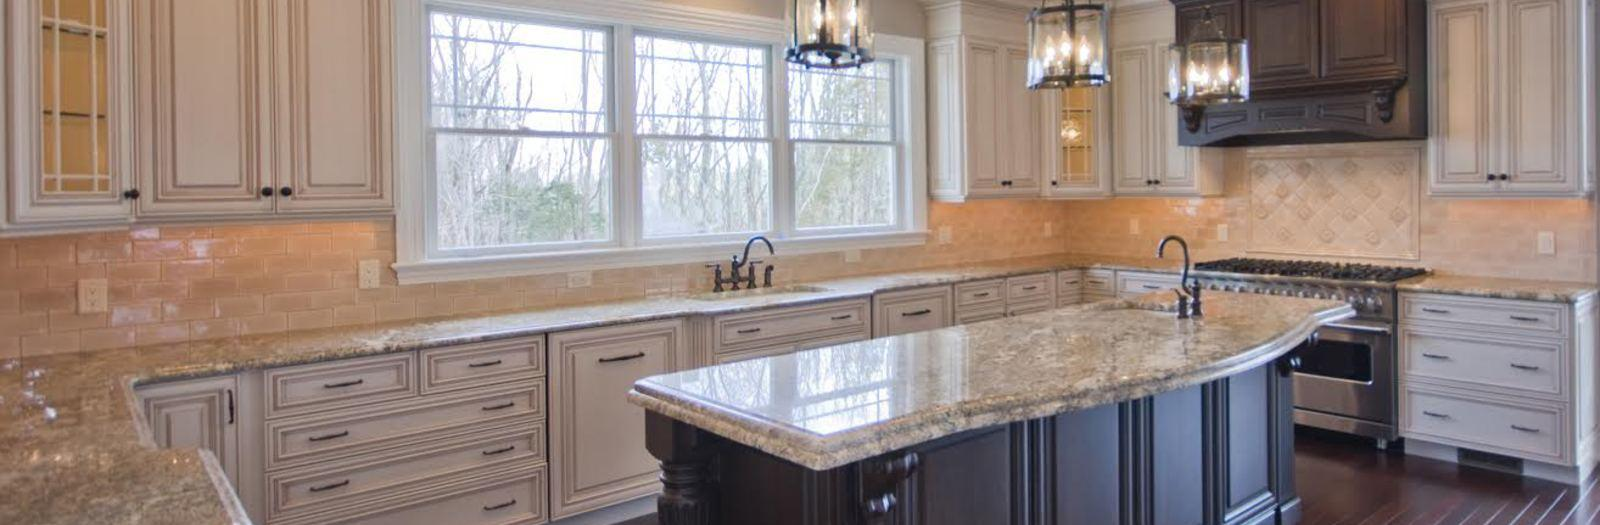 Traditional Kitchen with traditional style kitchen with off white cabinetry and a large island